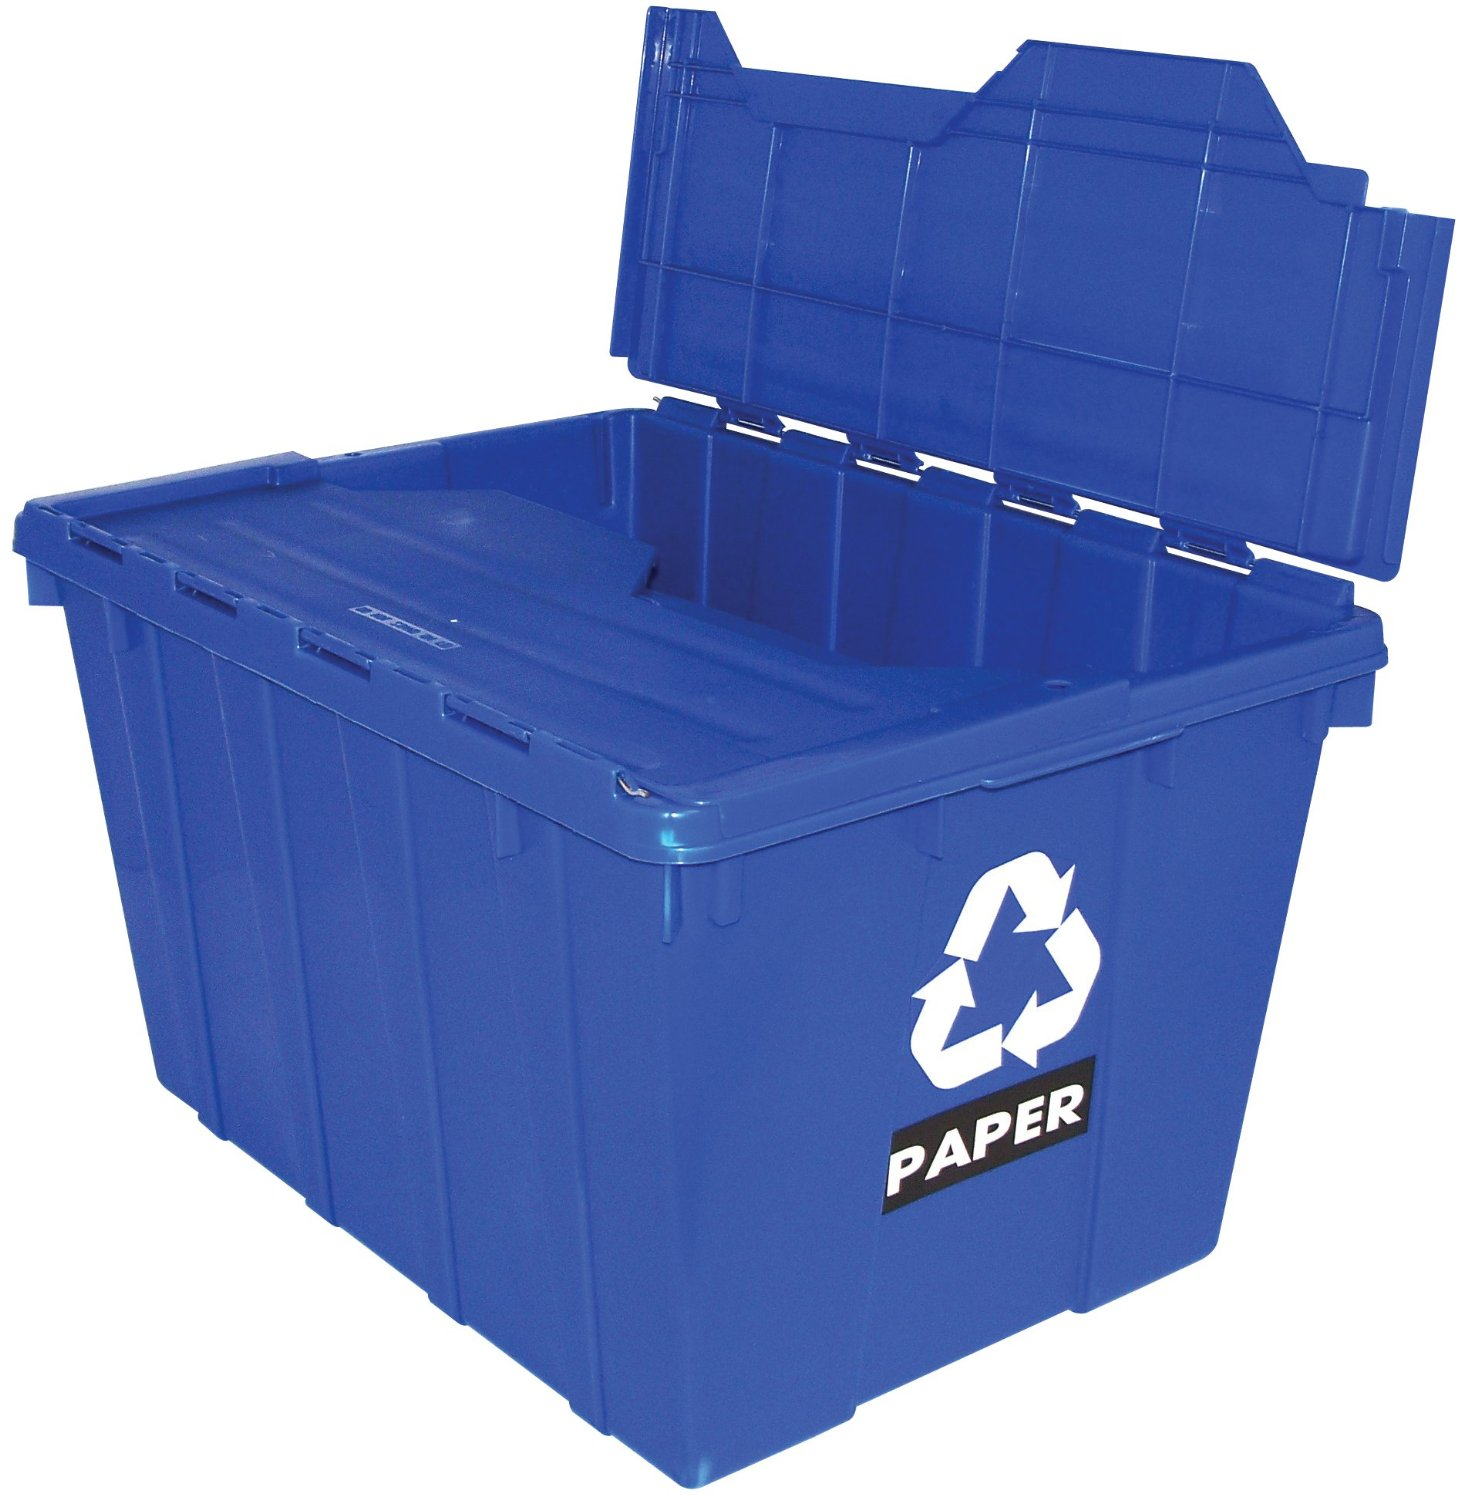 Recycling bins for home use images - Recycle containers for home use ...